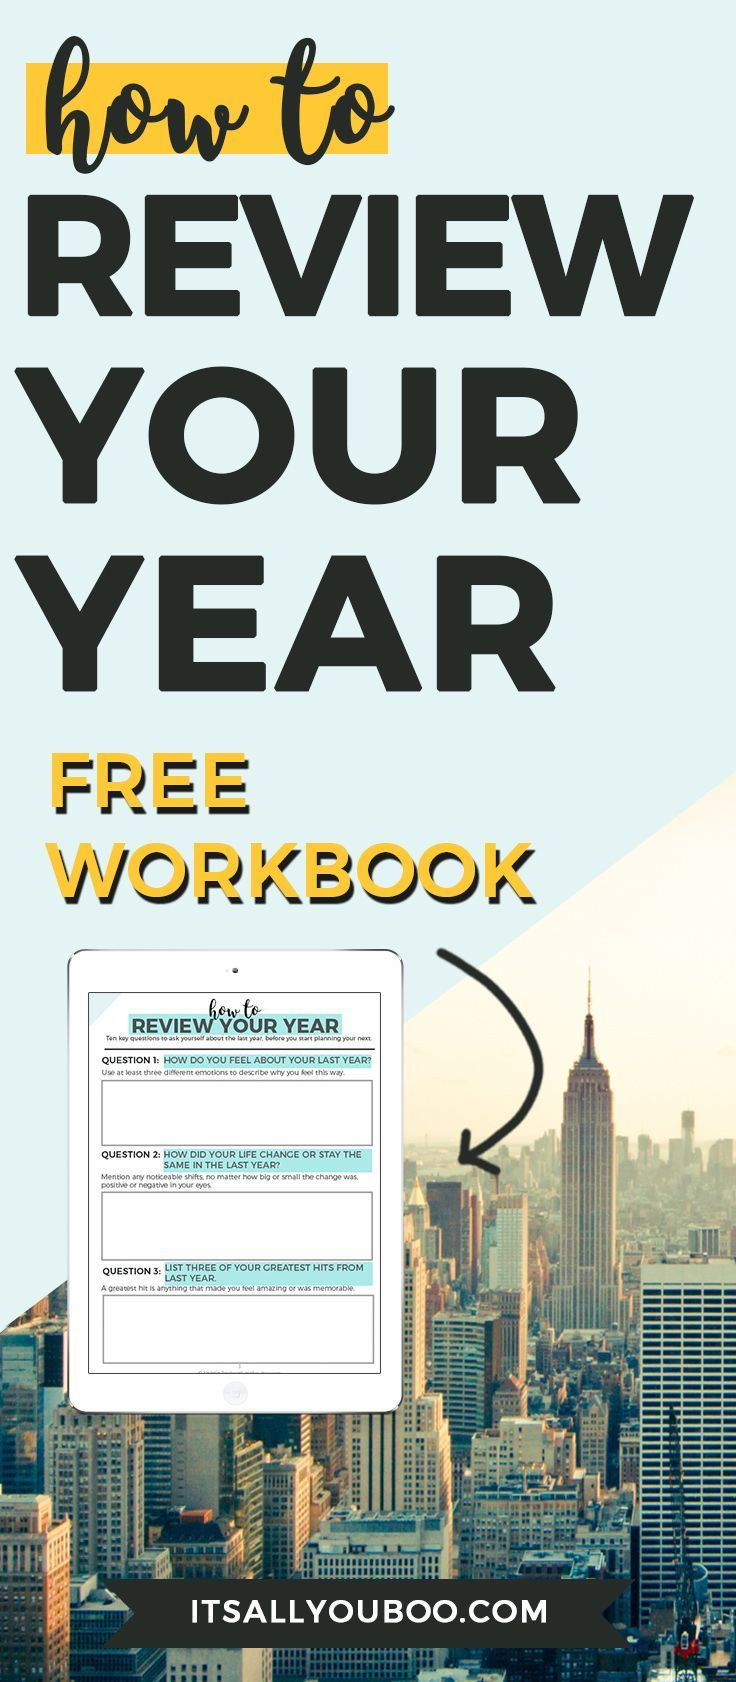 Why You Need To Review Your Year